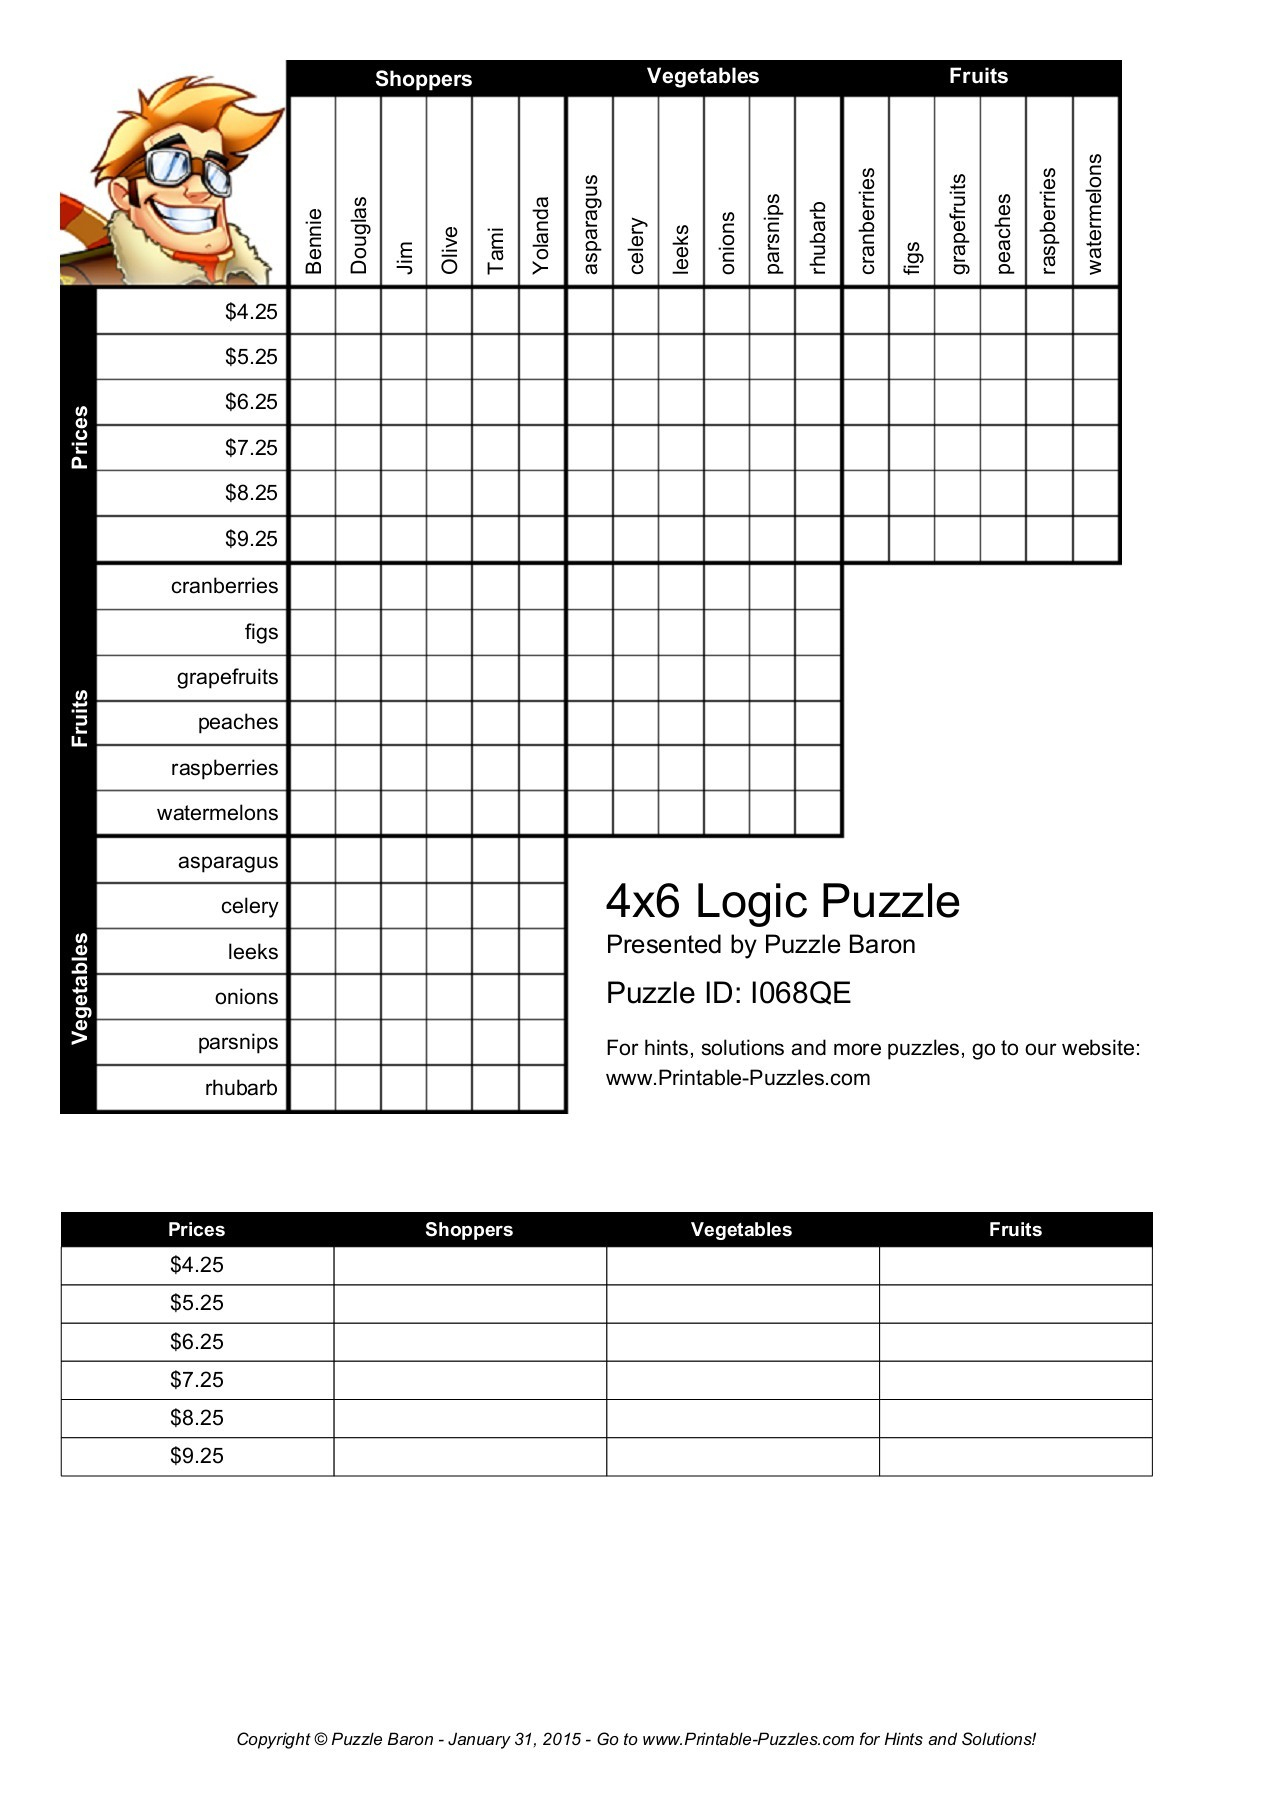 4X6 Logic Puzzle - Logic Puzzles - Play Online Or Print  Pages 1 - Printable Puzzles Hints